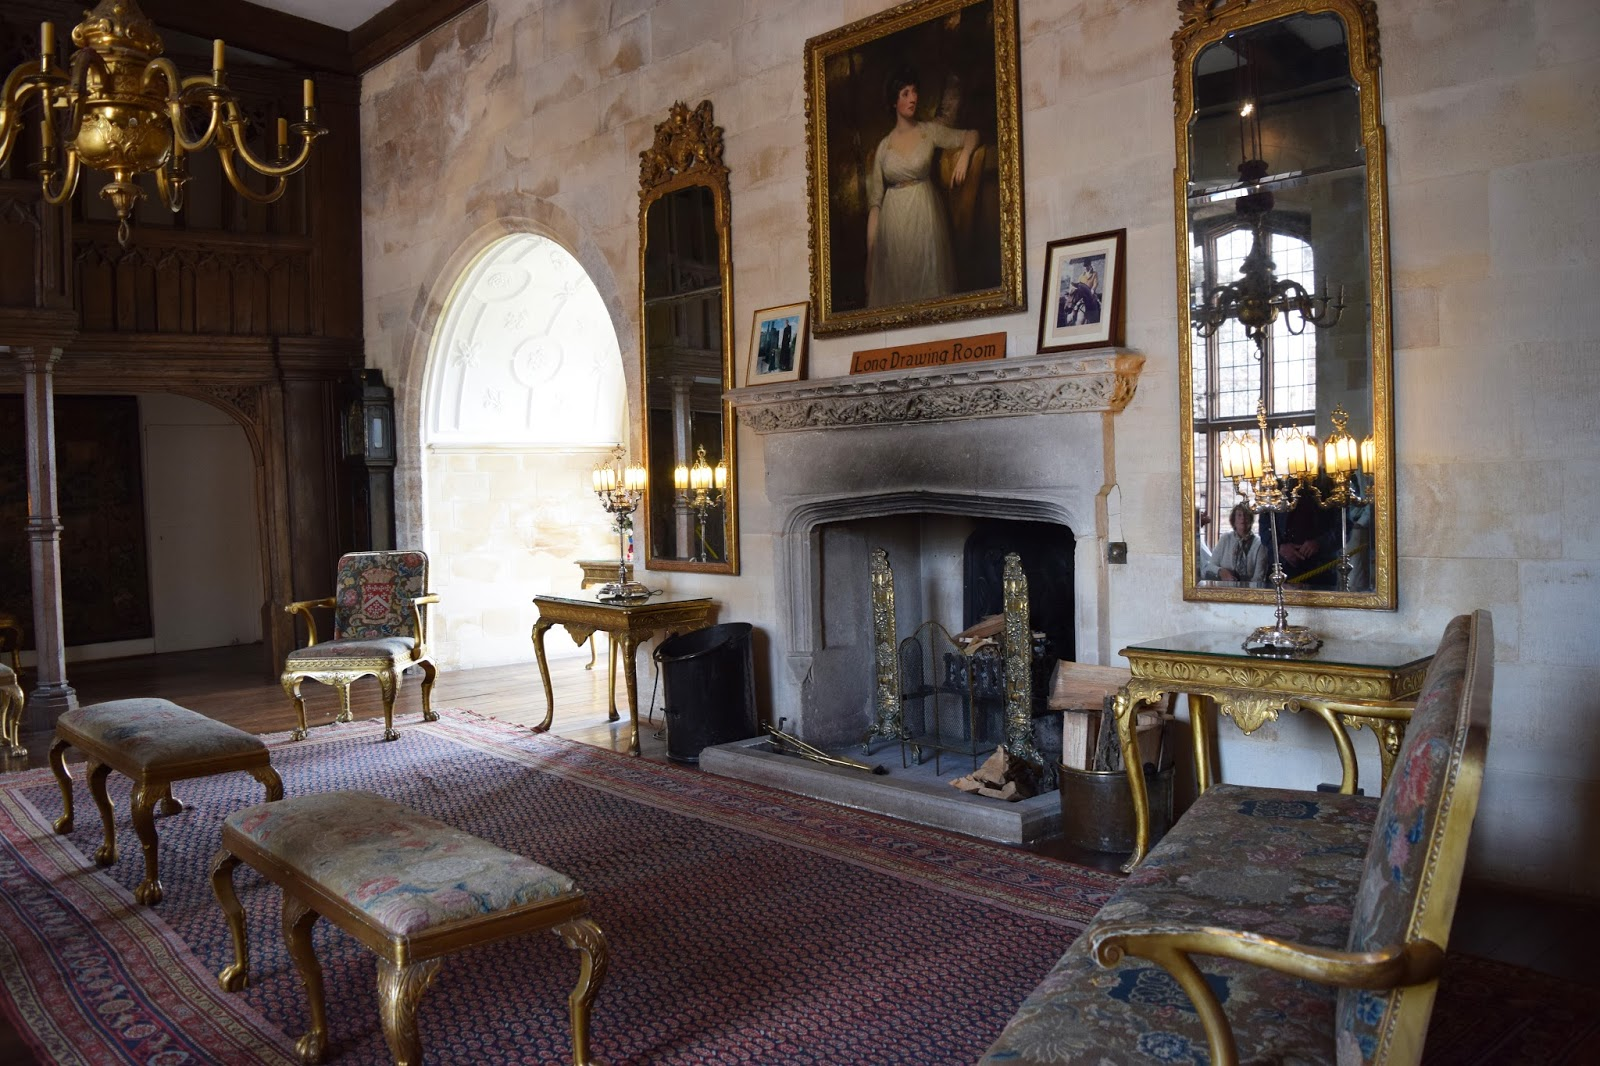 the main hall inside Berkeley Castle. A large fireplace is the main focus of the room. In front of the fireplace is a large red rug. Golden chairs are places about the edges of this rug